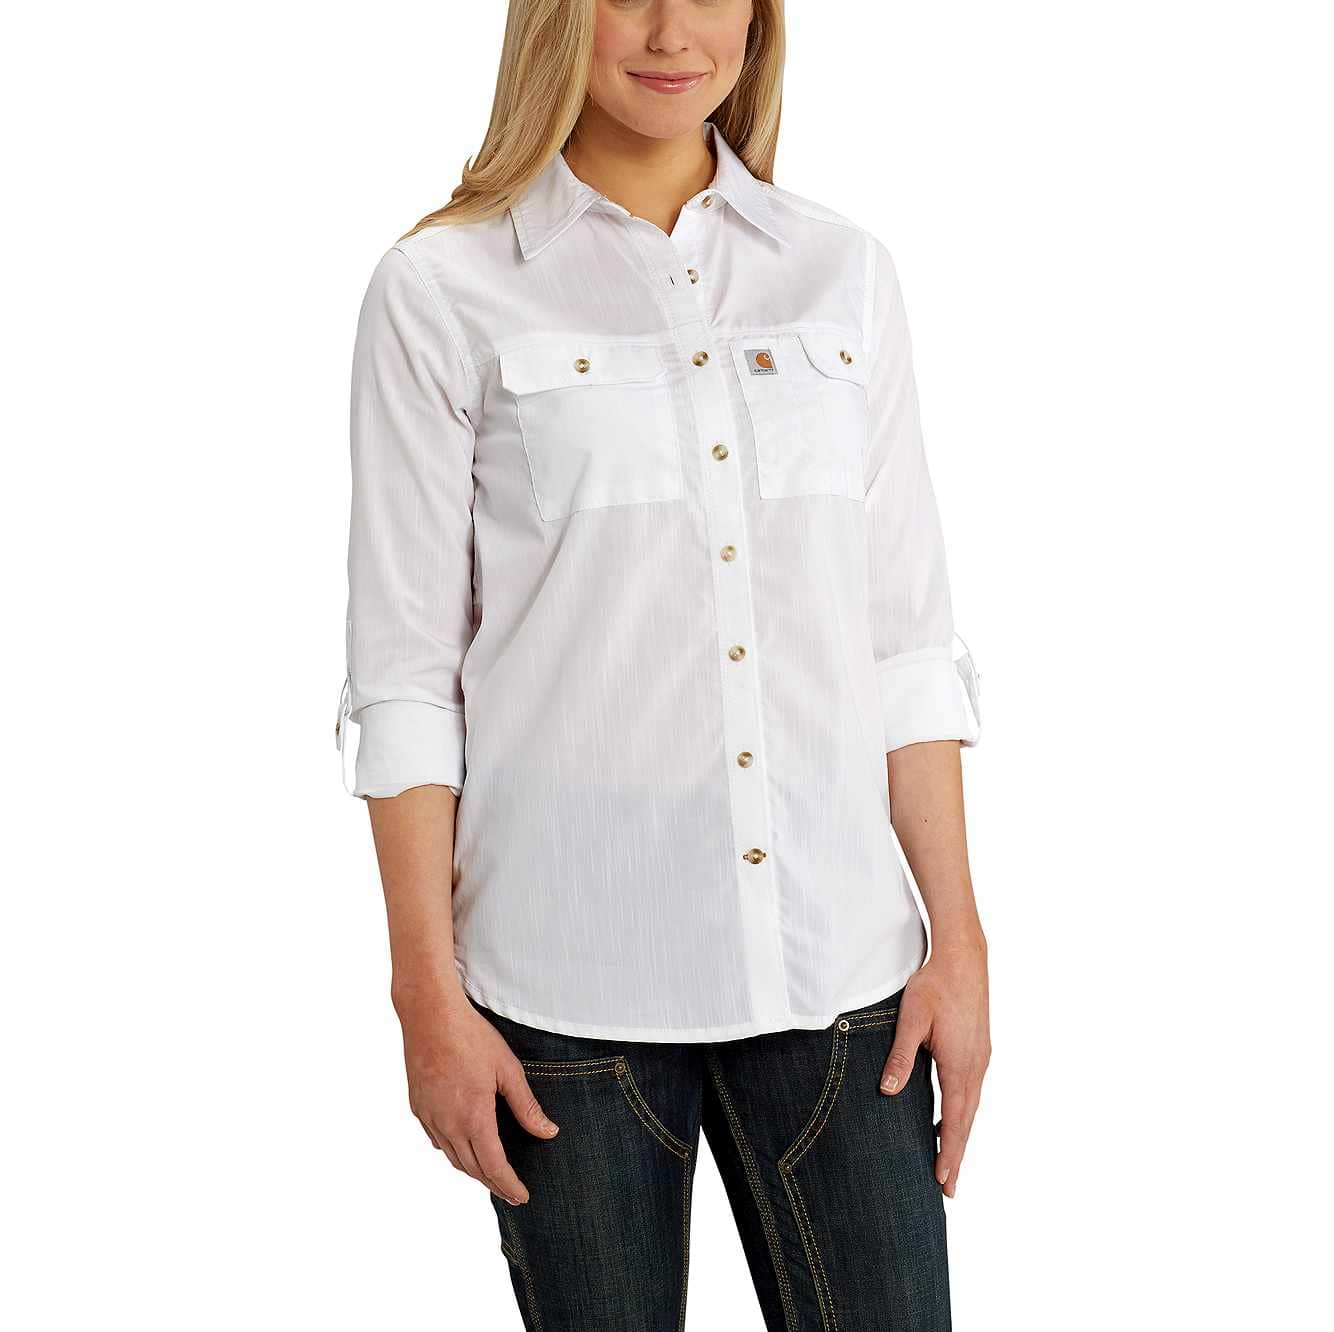 Picture of Carhartt Force® Ridgefield Shirt in White